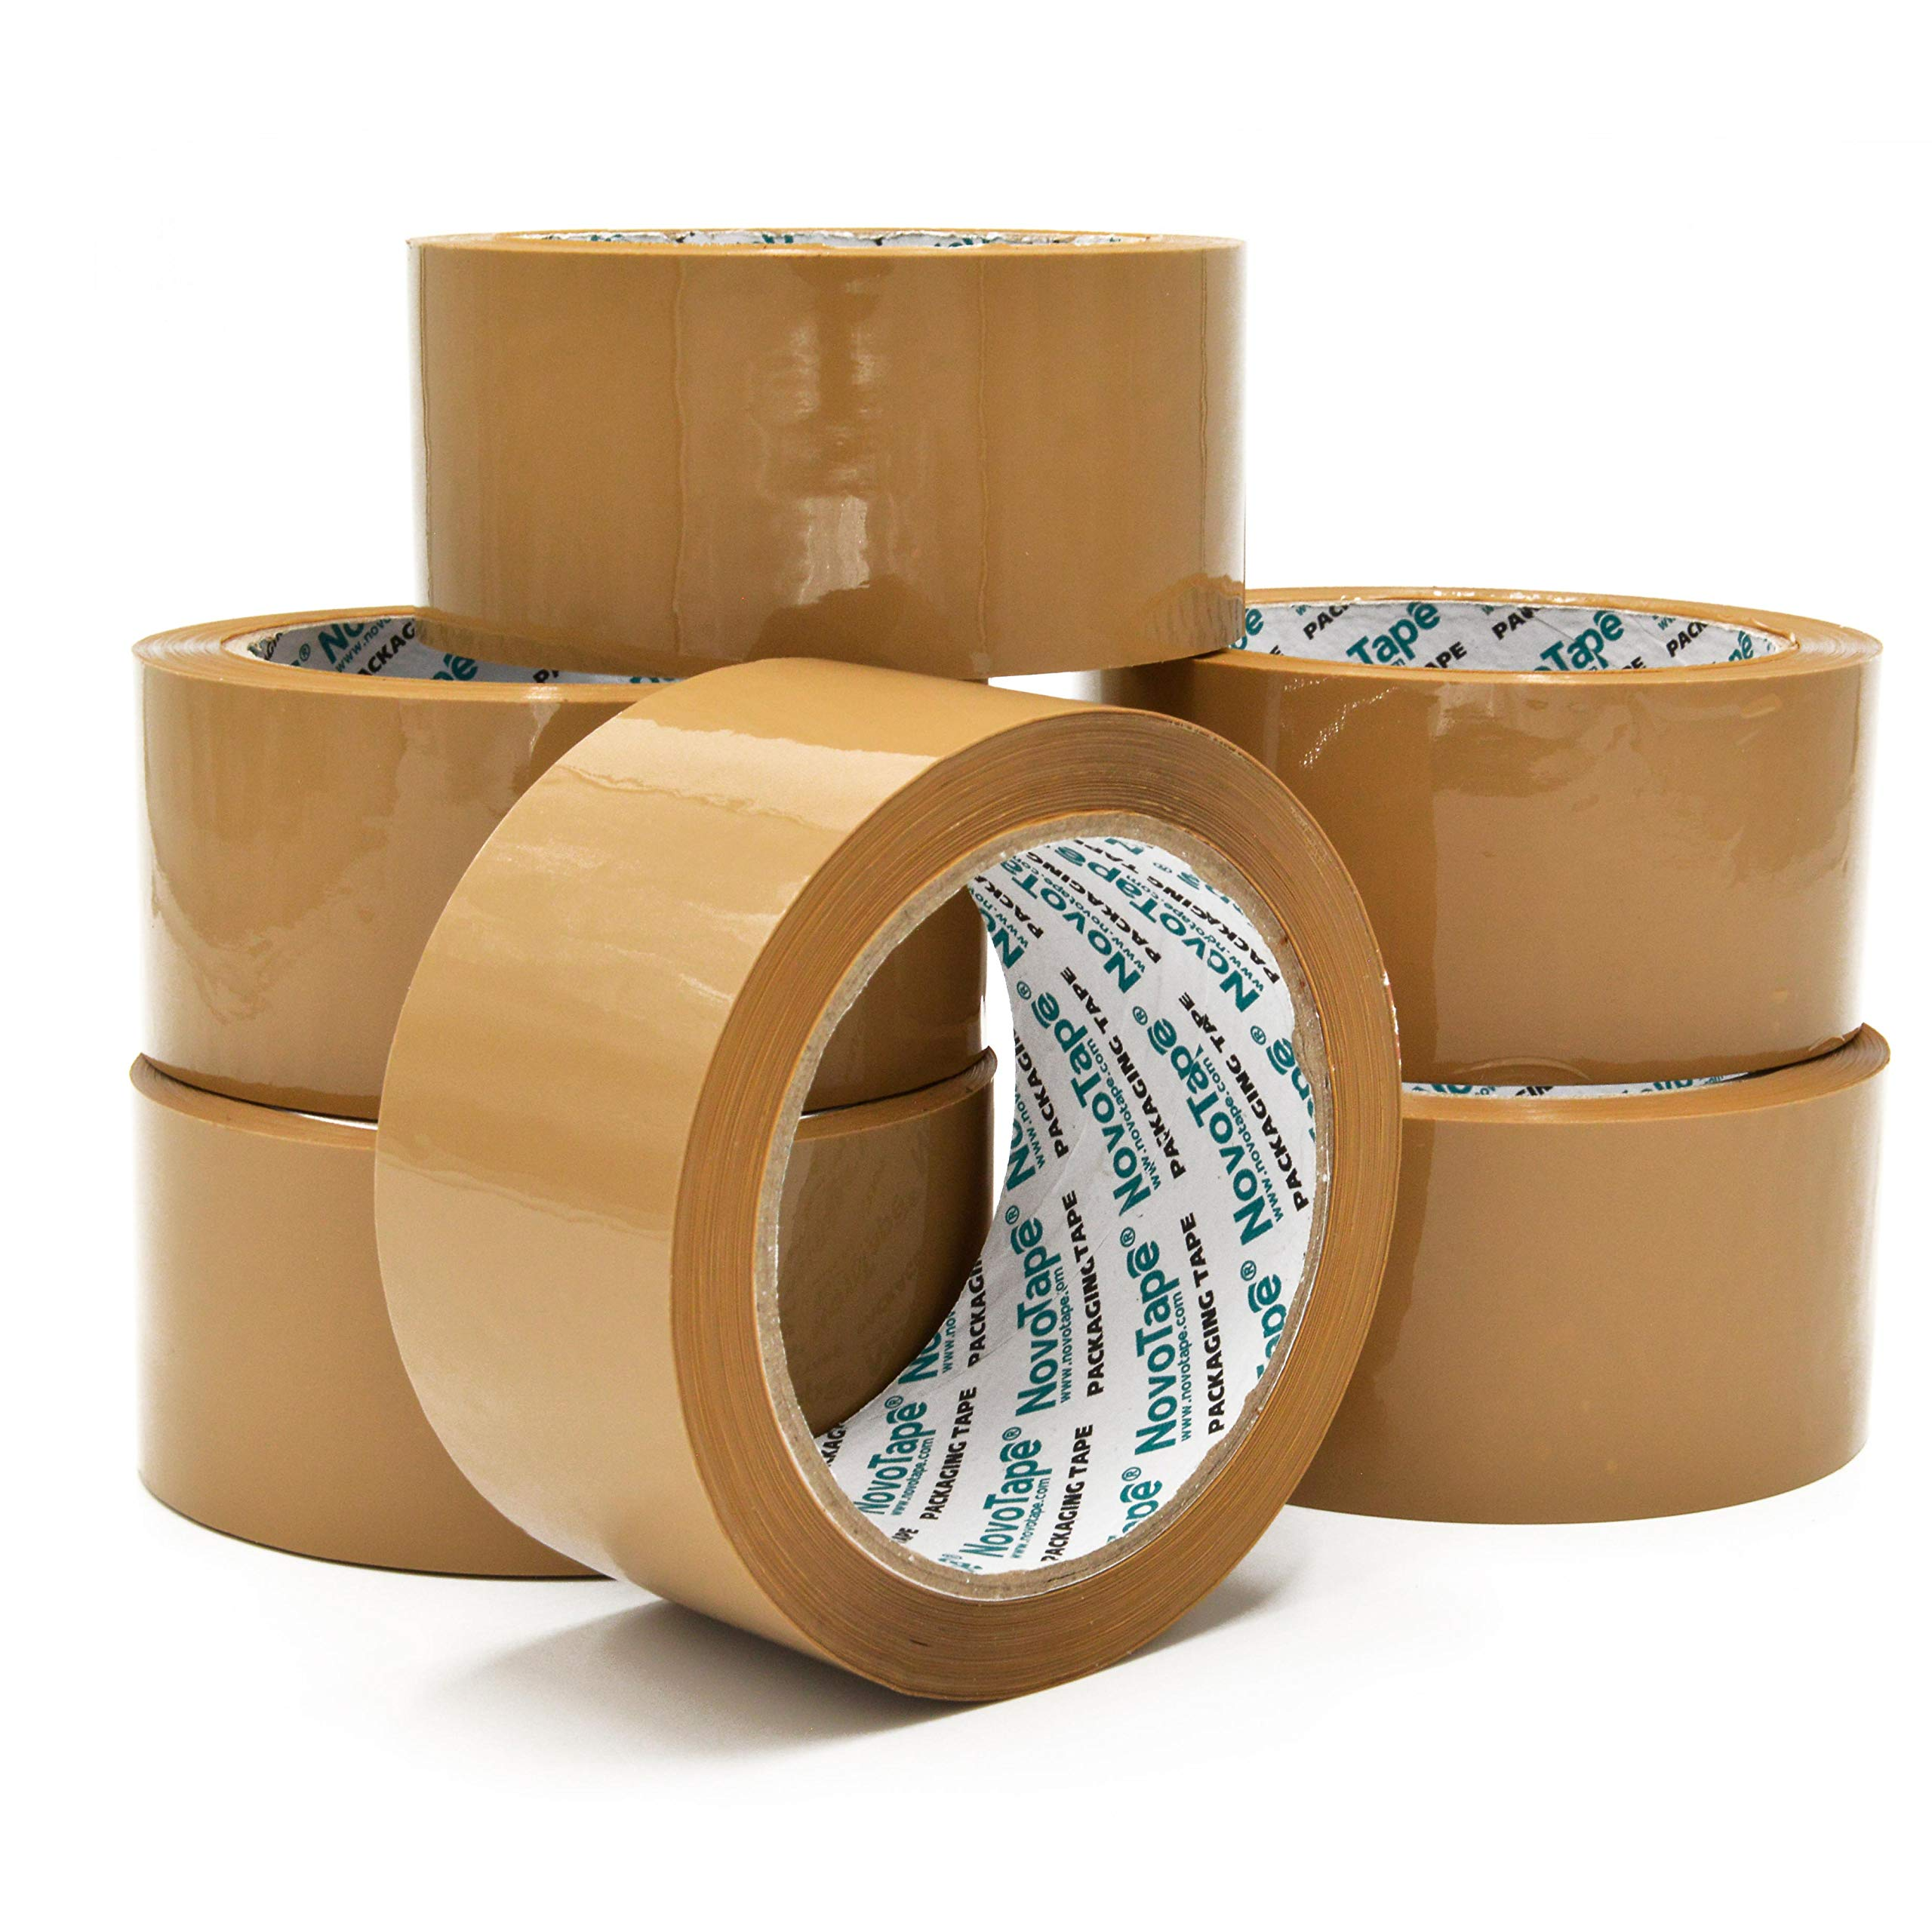 EXTRA Strong Brown Buff Parcel Packing Tape Packaging Box etc 48mm x 66m 18 Roll